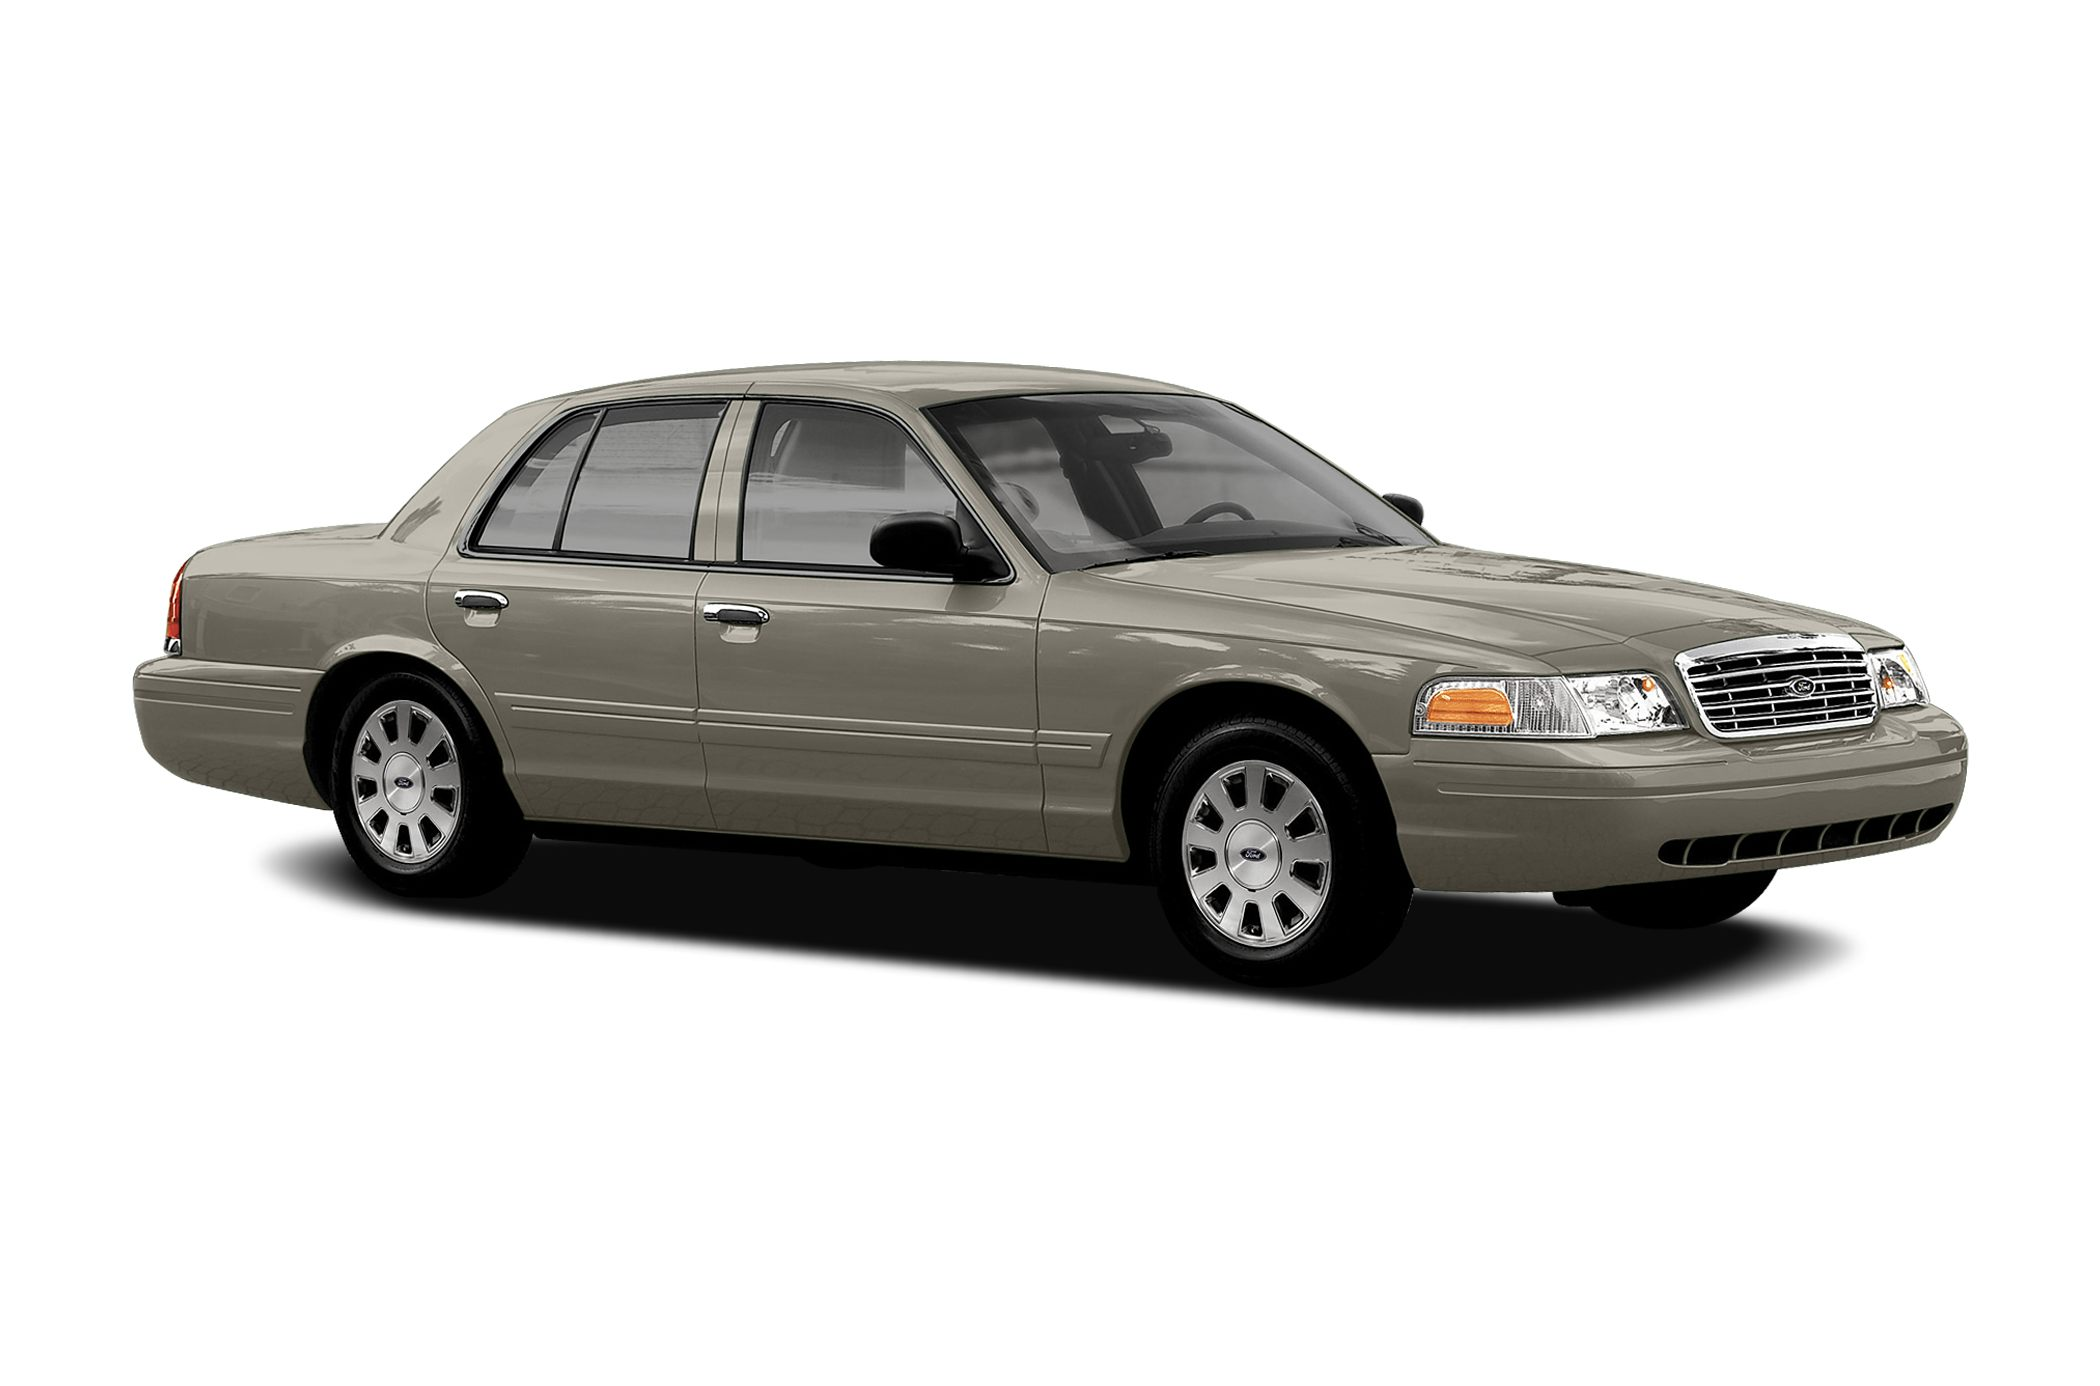 2006 Ford Crown Victoria LX Sedan for sale in Millington for $7,995 with 62,400 miles